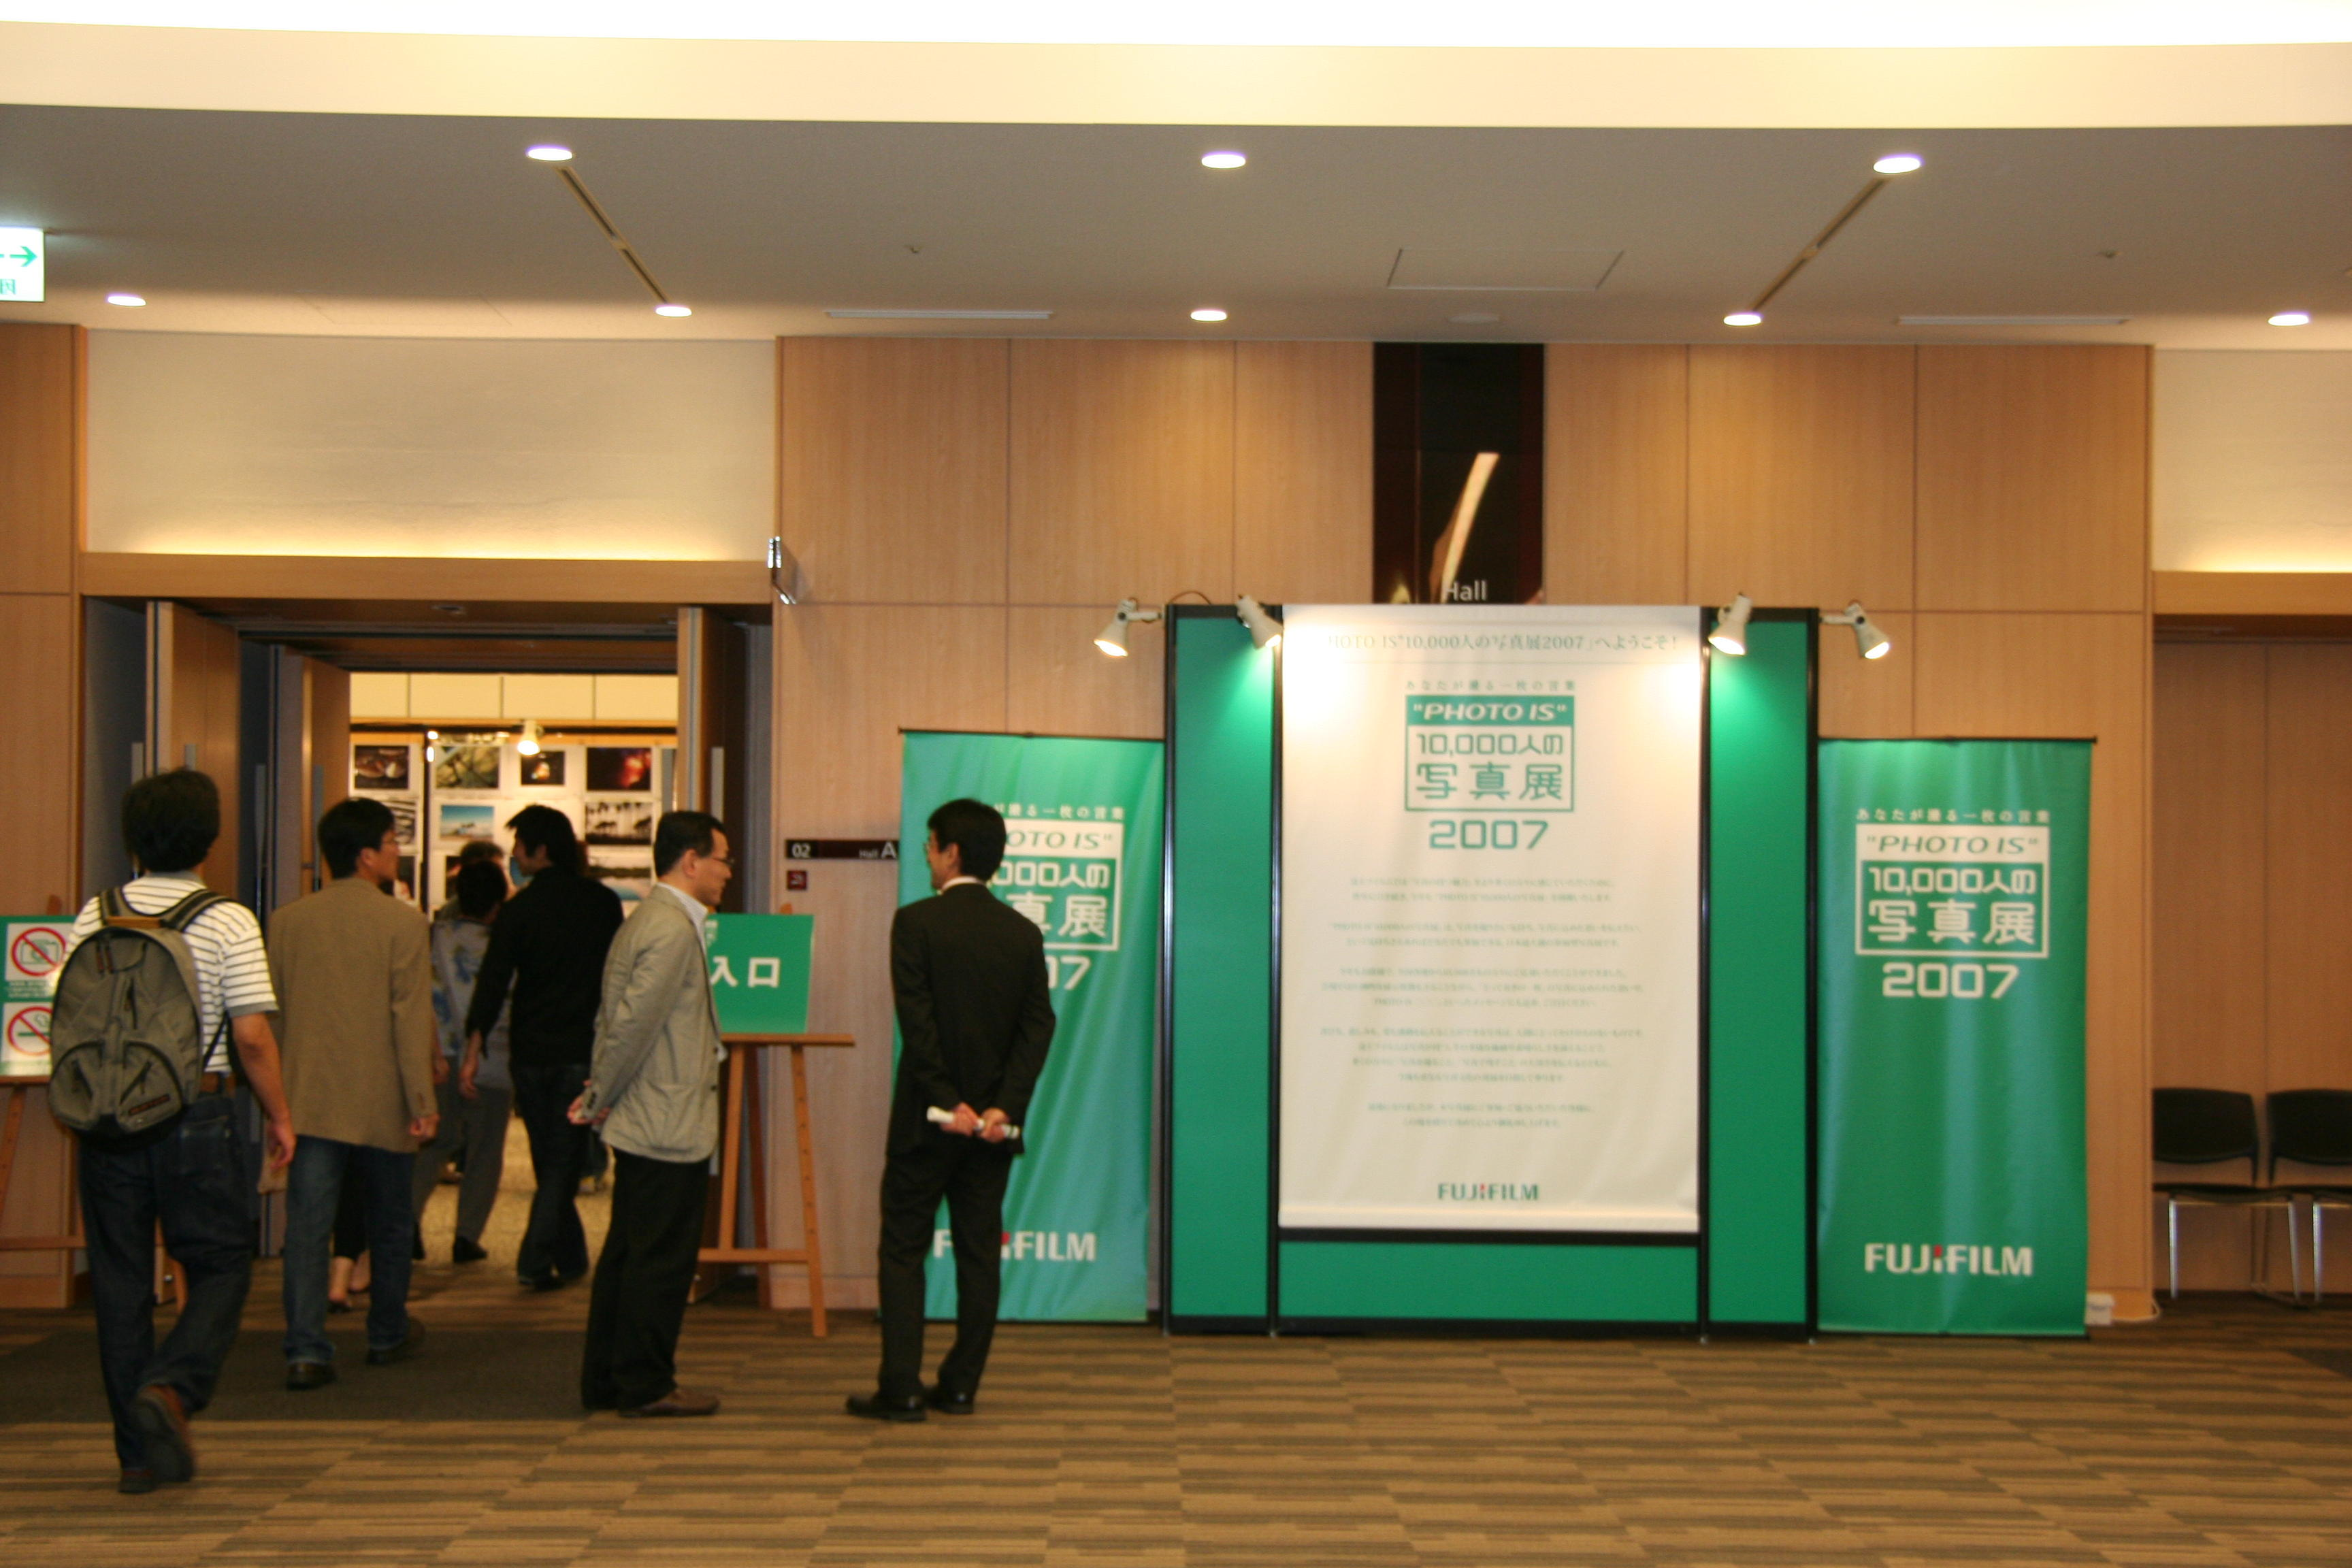 「PHOTO IS」10,000人の写真展